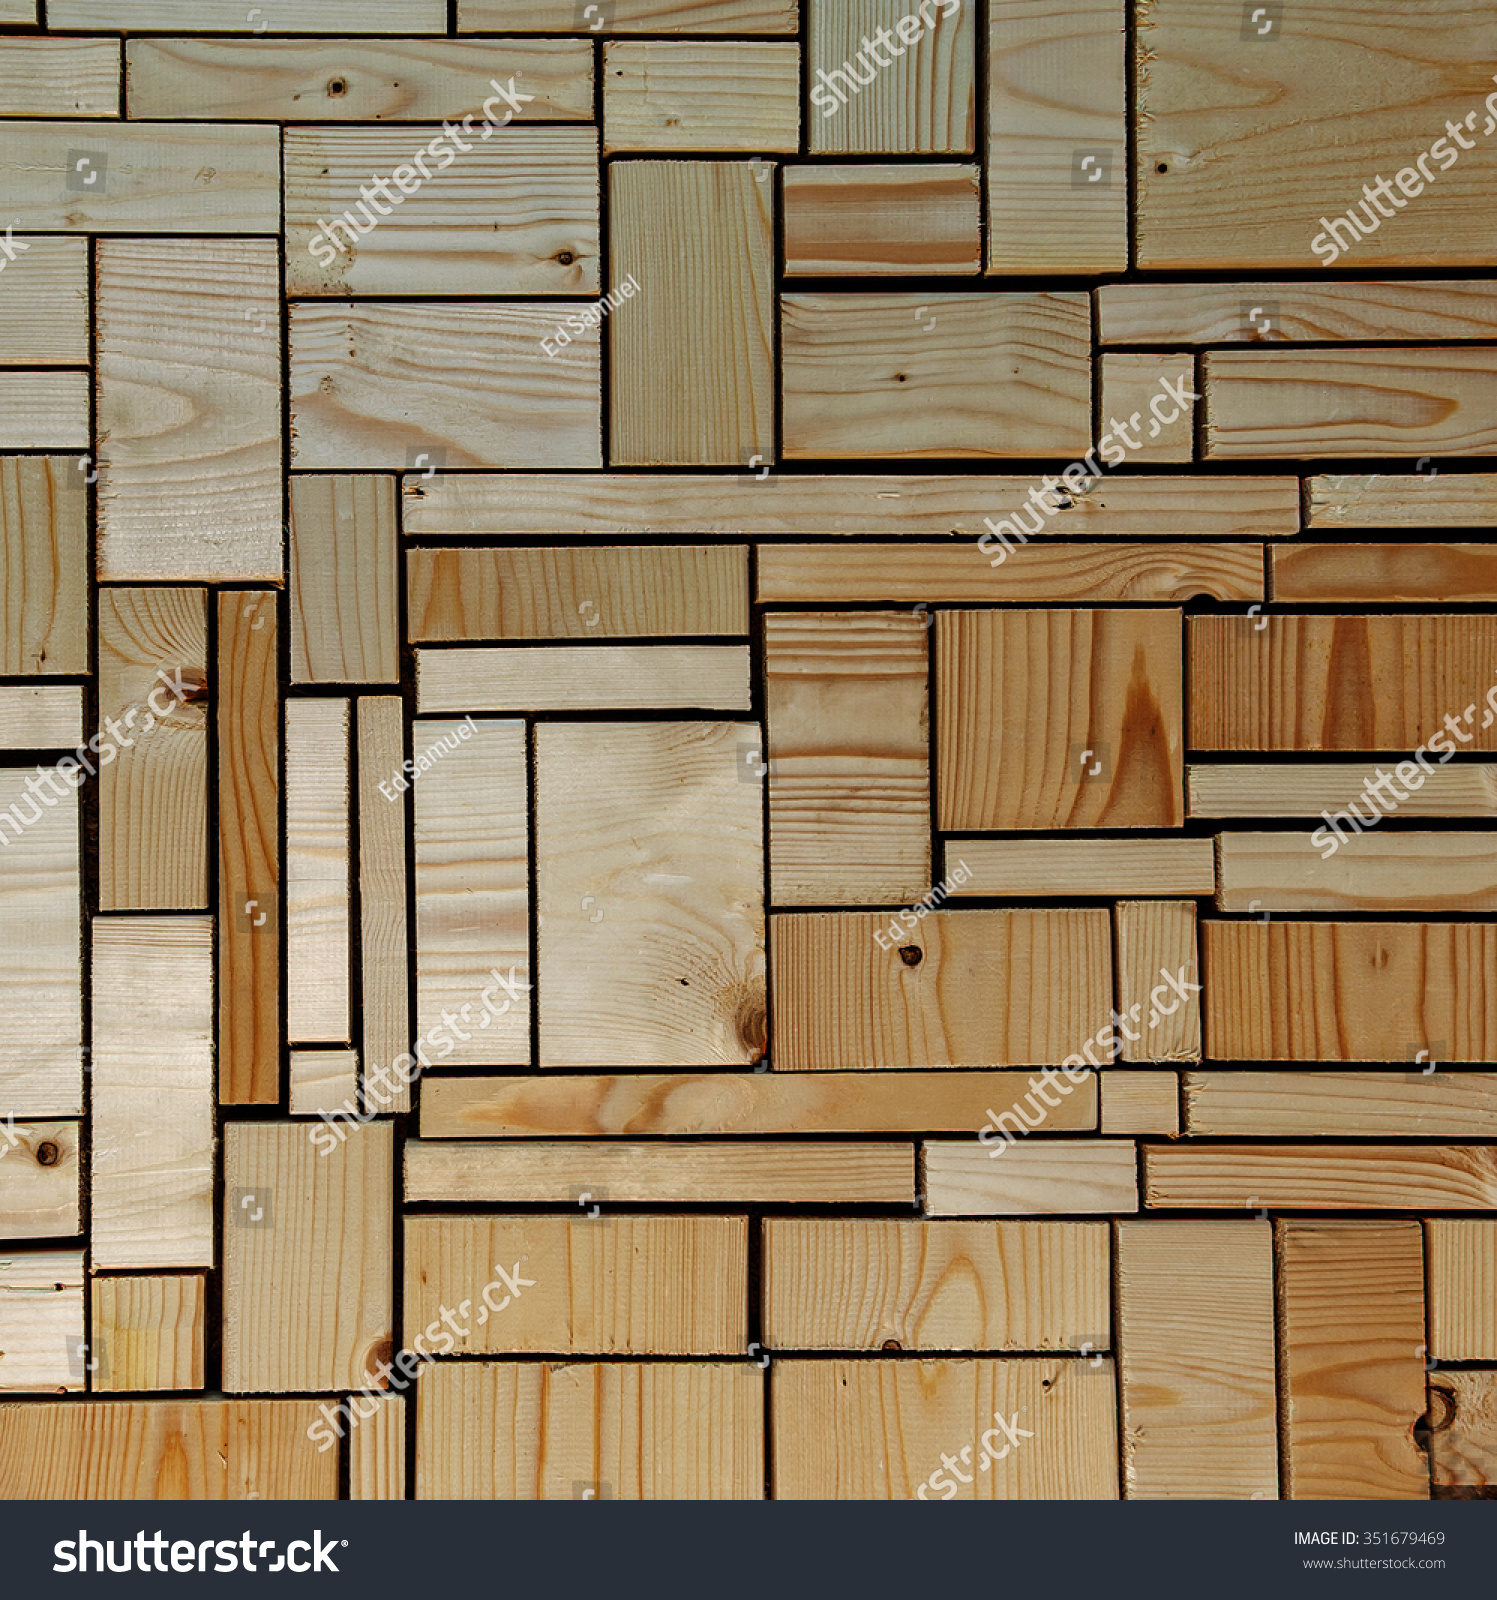 Wood Work Diy Interior Design Carpentry Stock Photo (Royalty Free ...